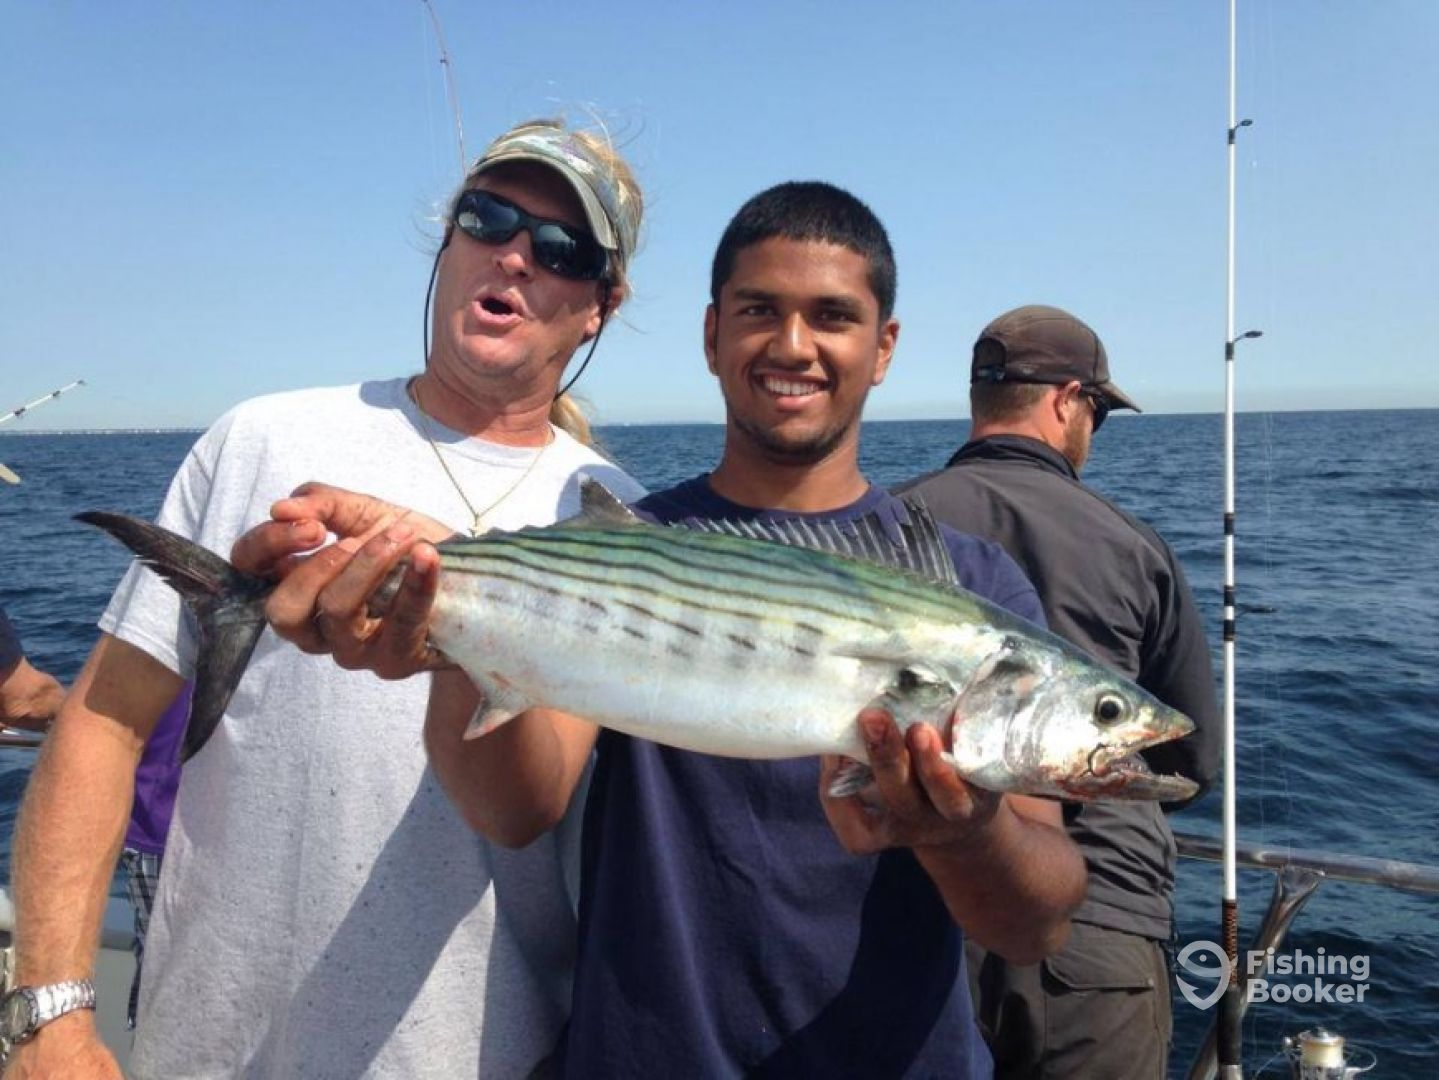 Queen mary open boat charters point pleasant beach nj for Point pleasant fishing charters